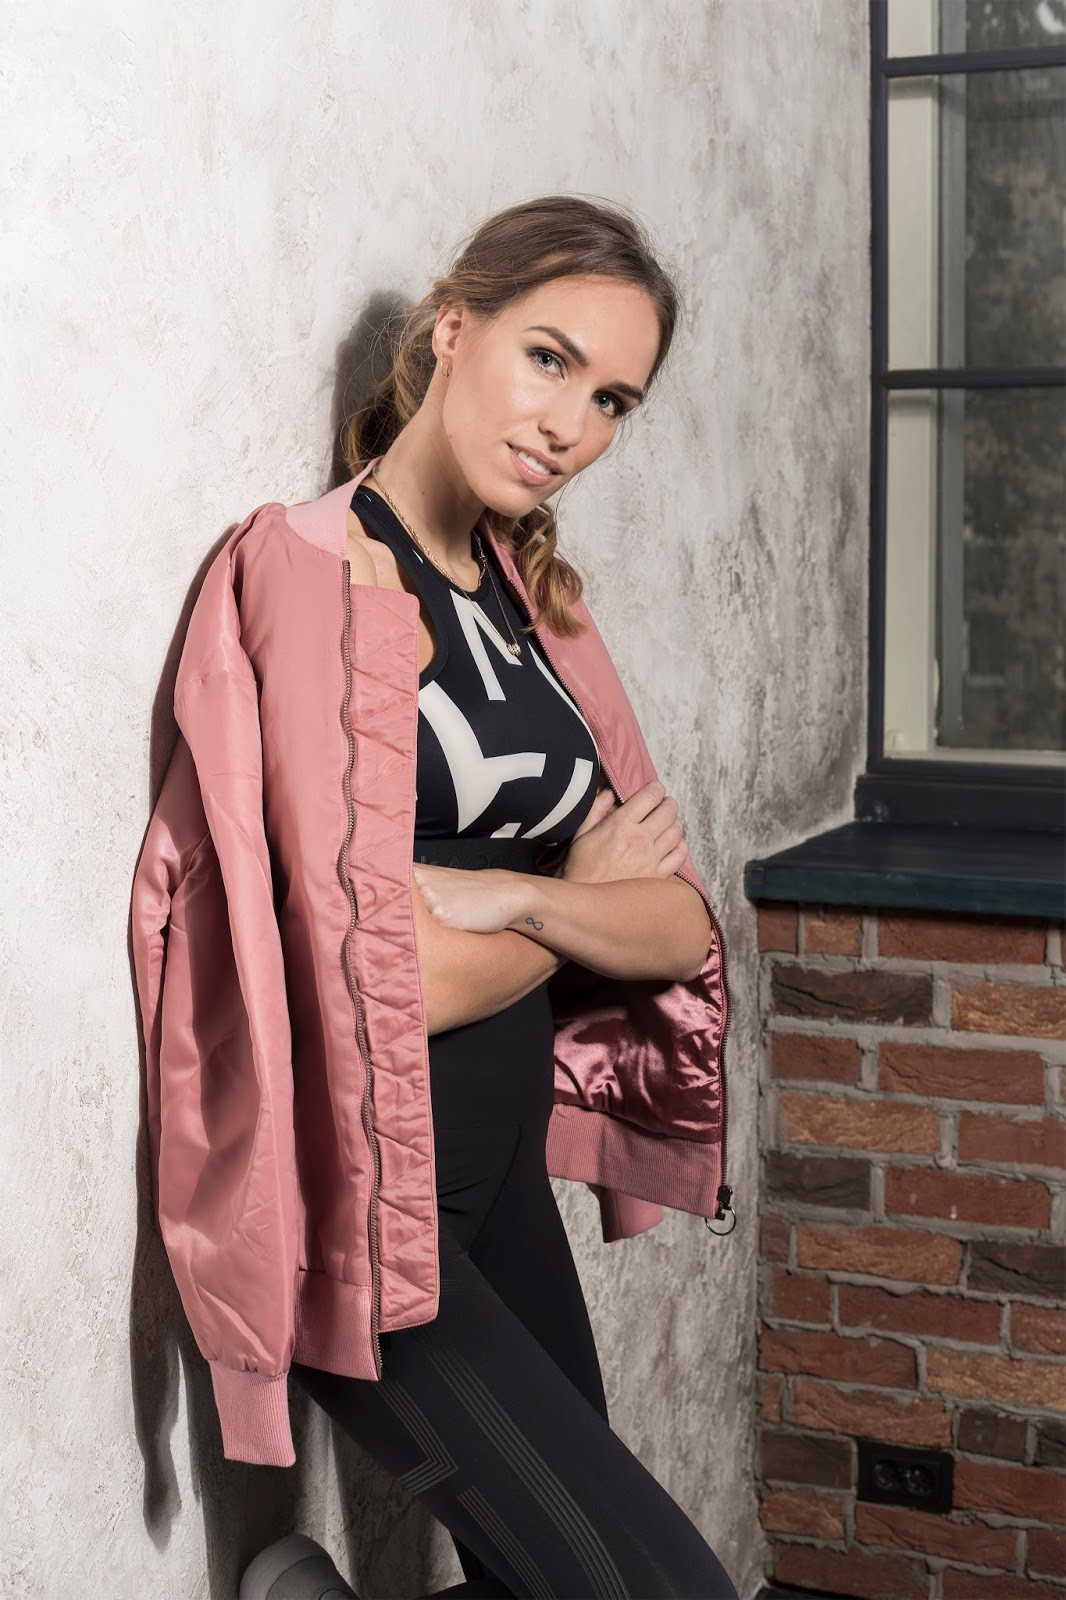 reebok pink bomber jacket workout outfit